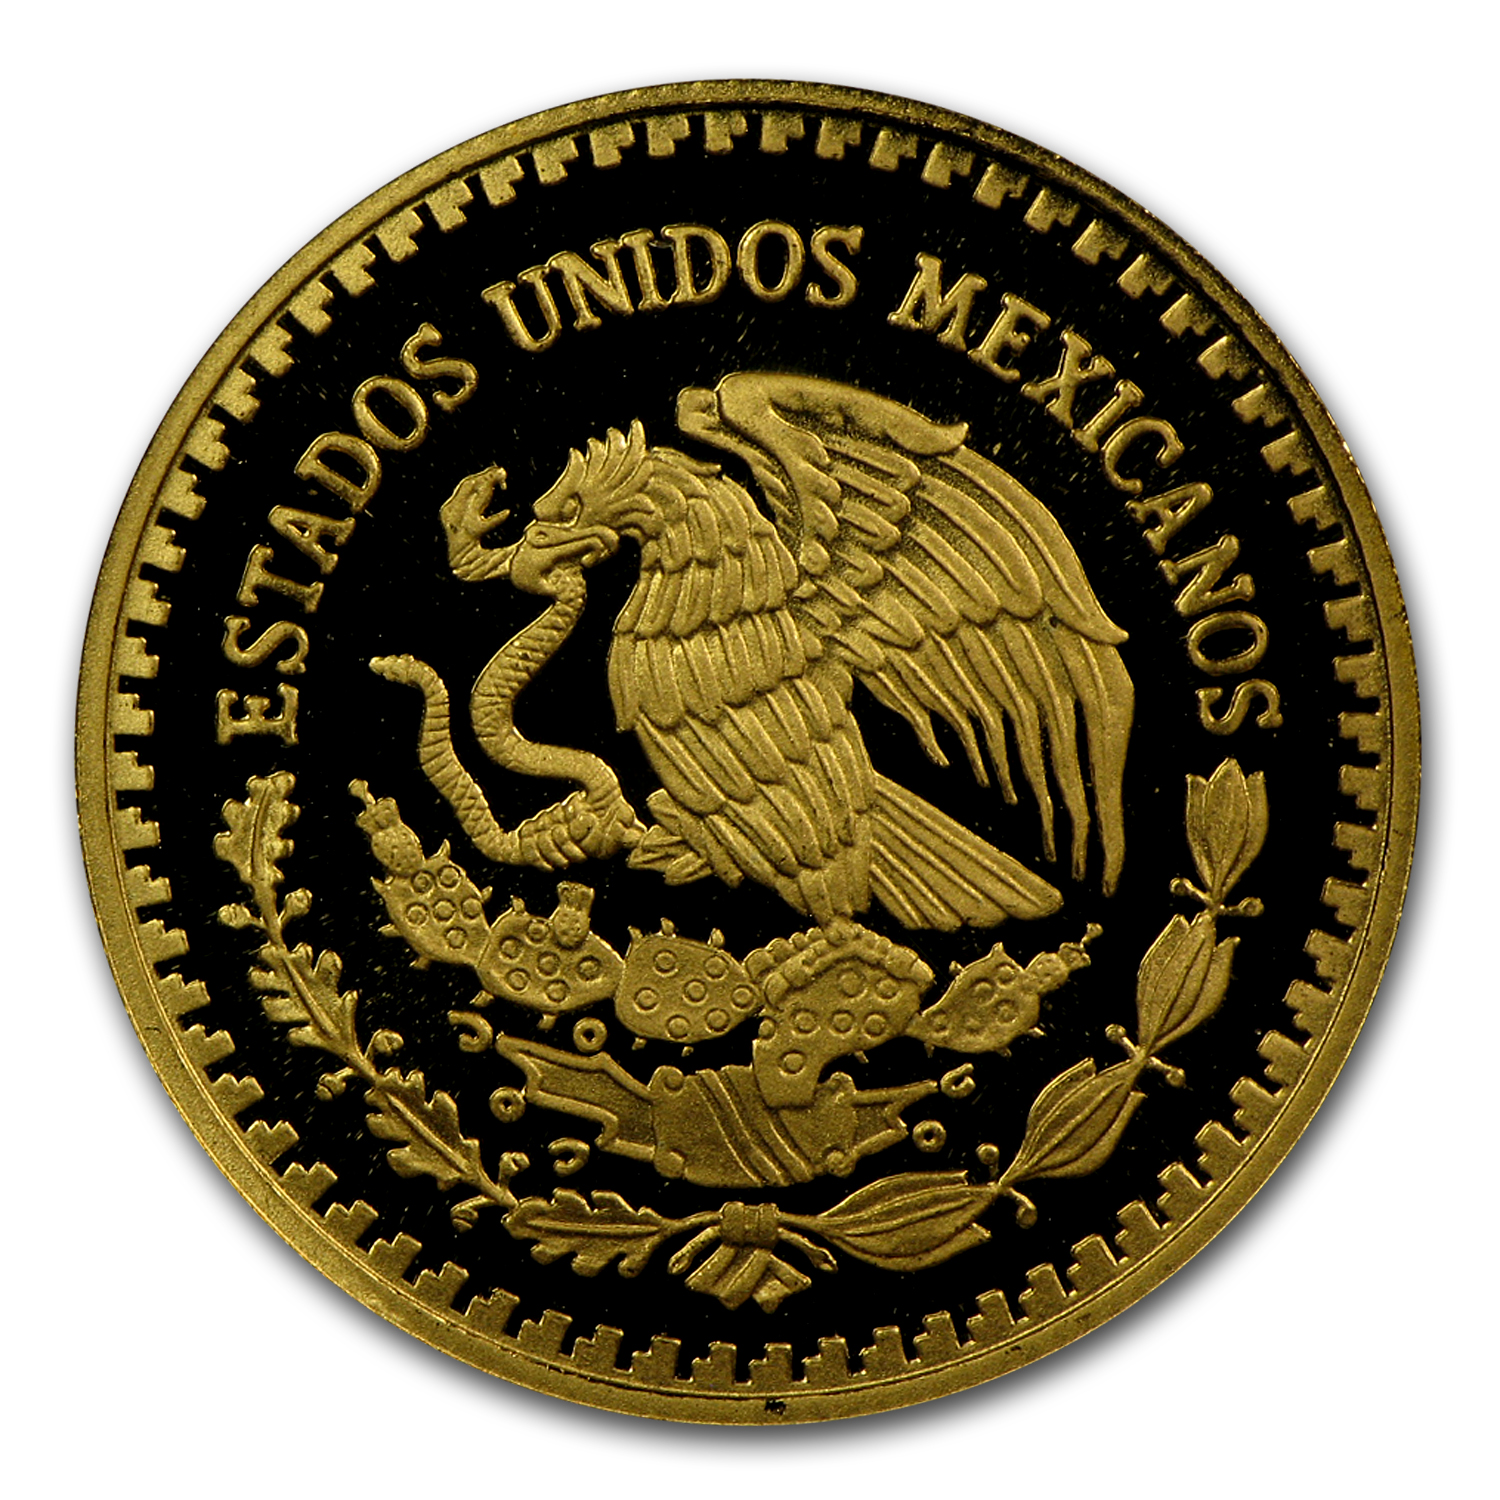 2007 Mexico 1/4 oz Proof Gold Libertad